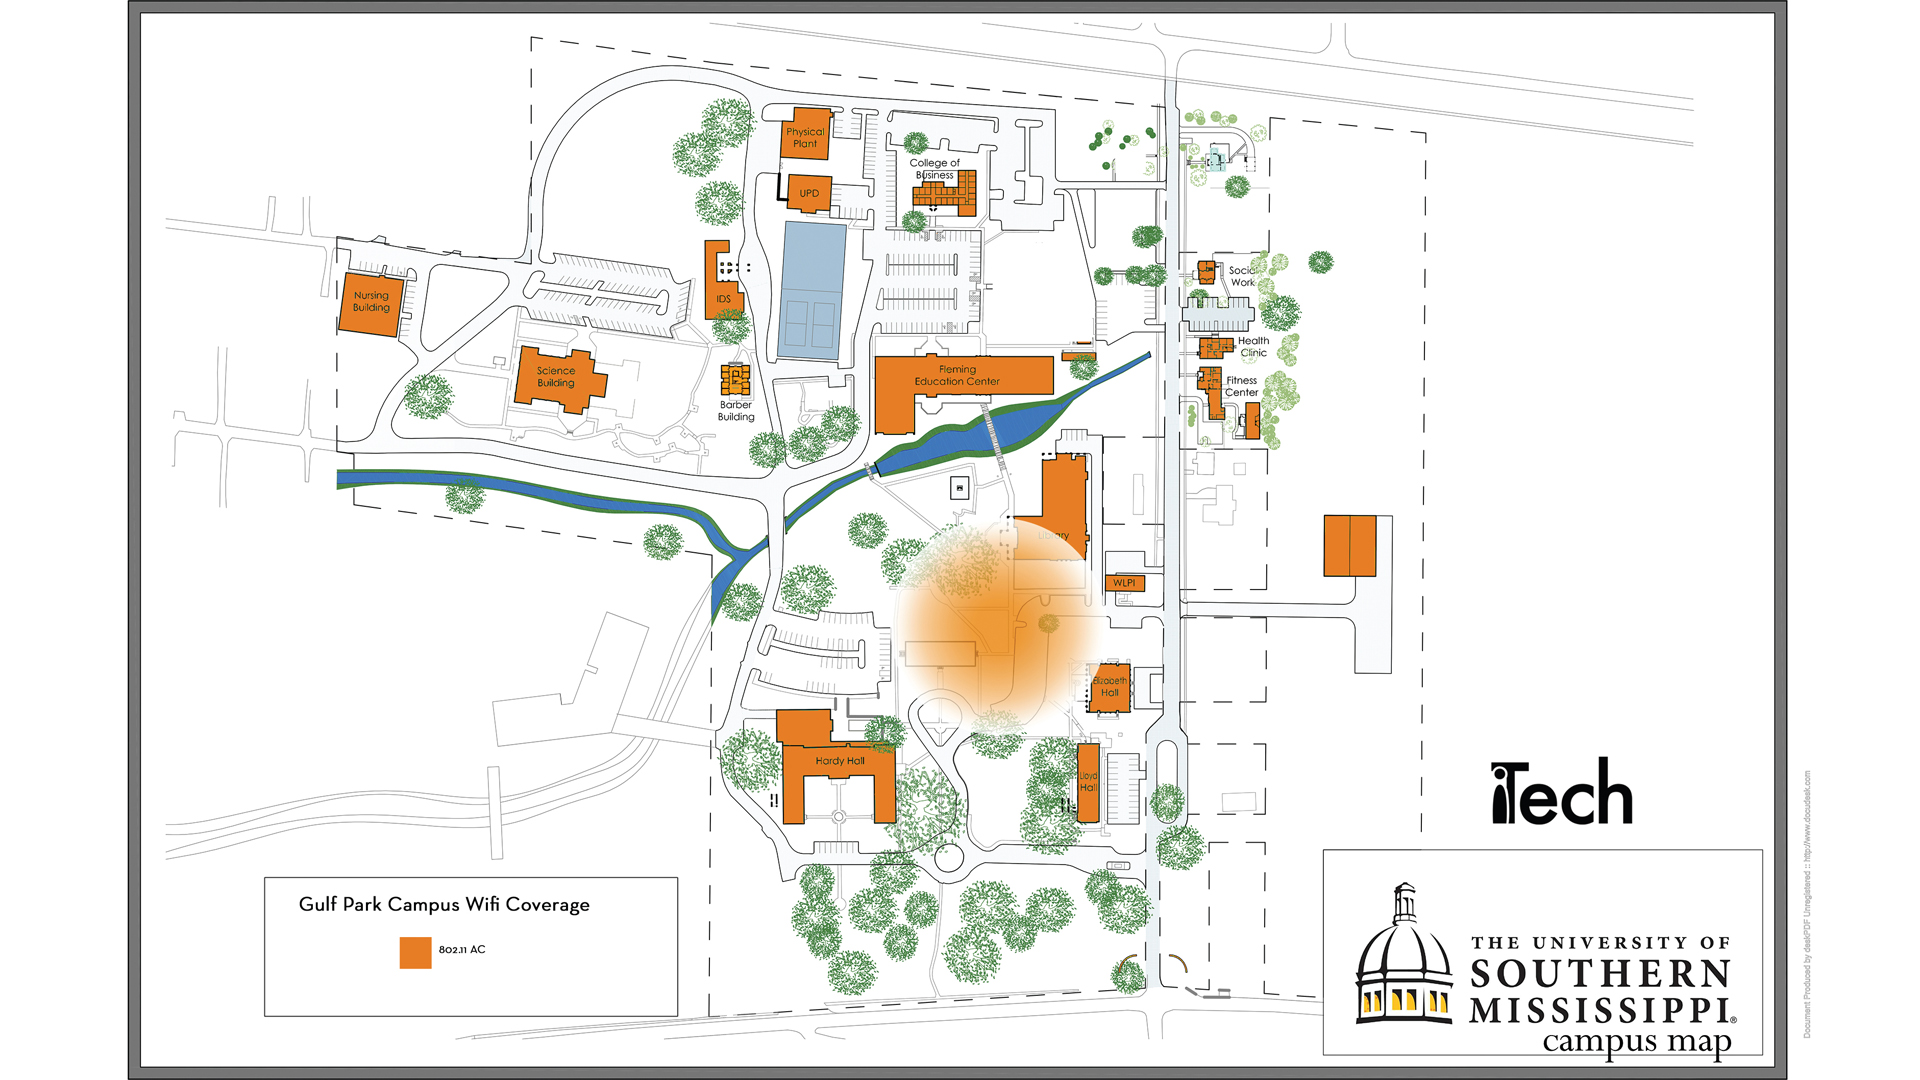 usm gulf coast campus map For Students With Limited Internet Services Itech The usm gulf coast campus map